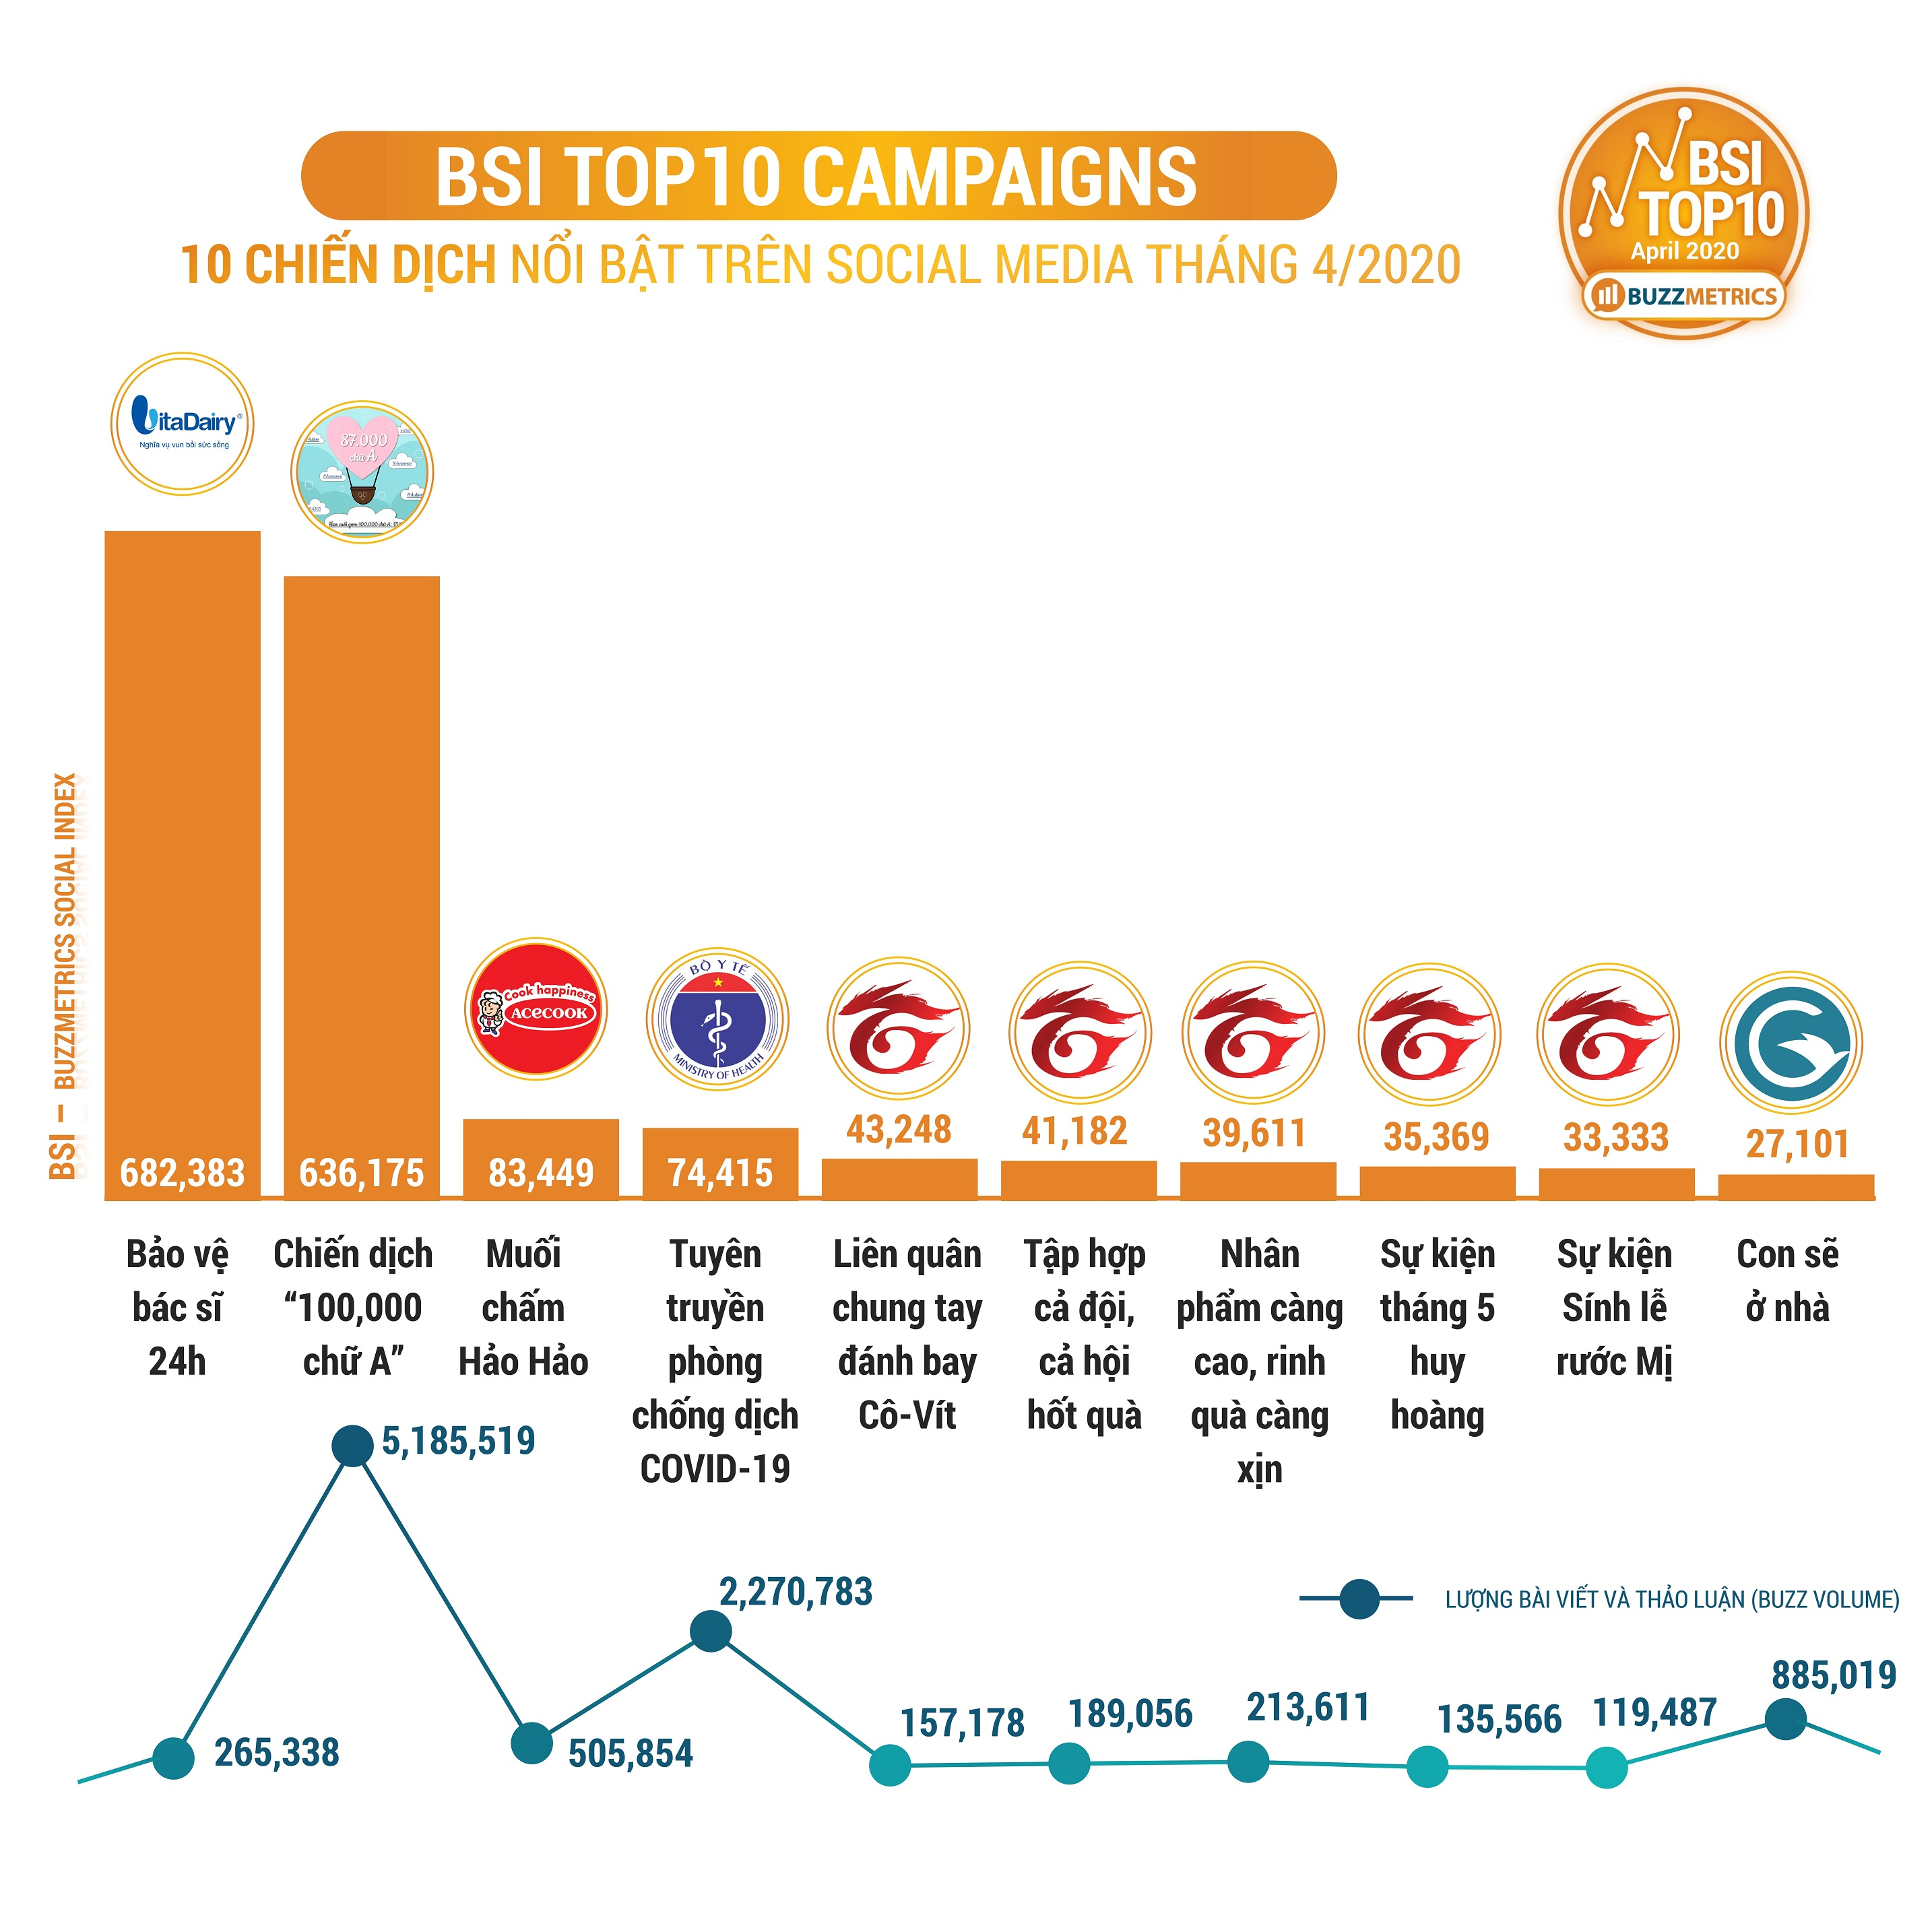 BSI Top10 APR 2020 CAMPAIGNS chart new